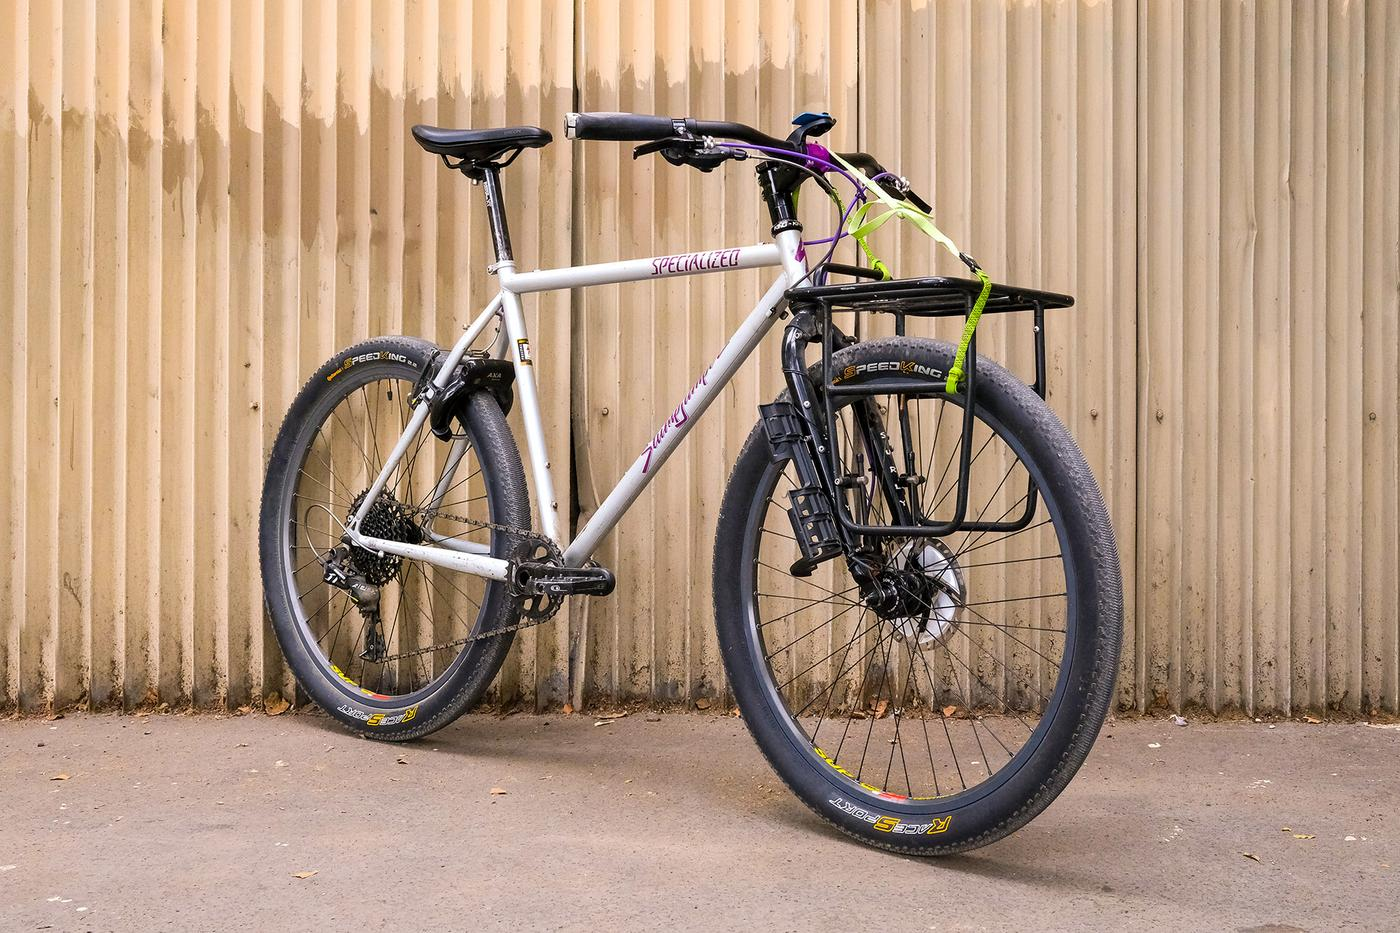 Readers' Rides: Rokus' Specialized Stumpjumper by Studio ROOK